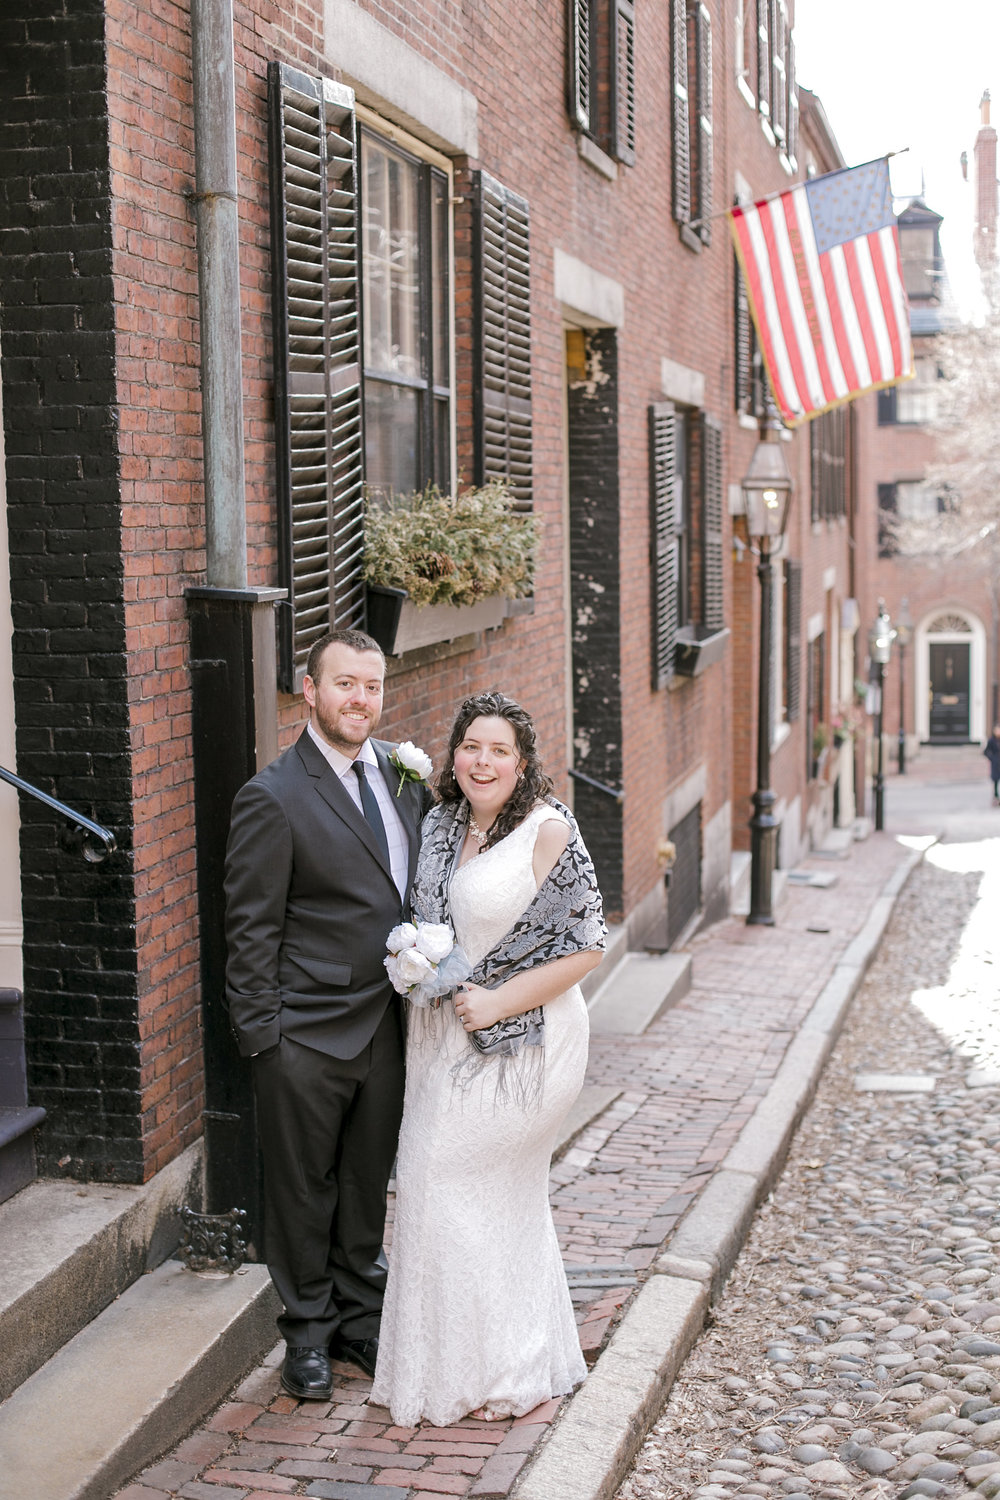 beacon_hill_acorn_street_wedding_photographer_erica_pezente_photo-4.jpg